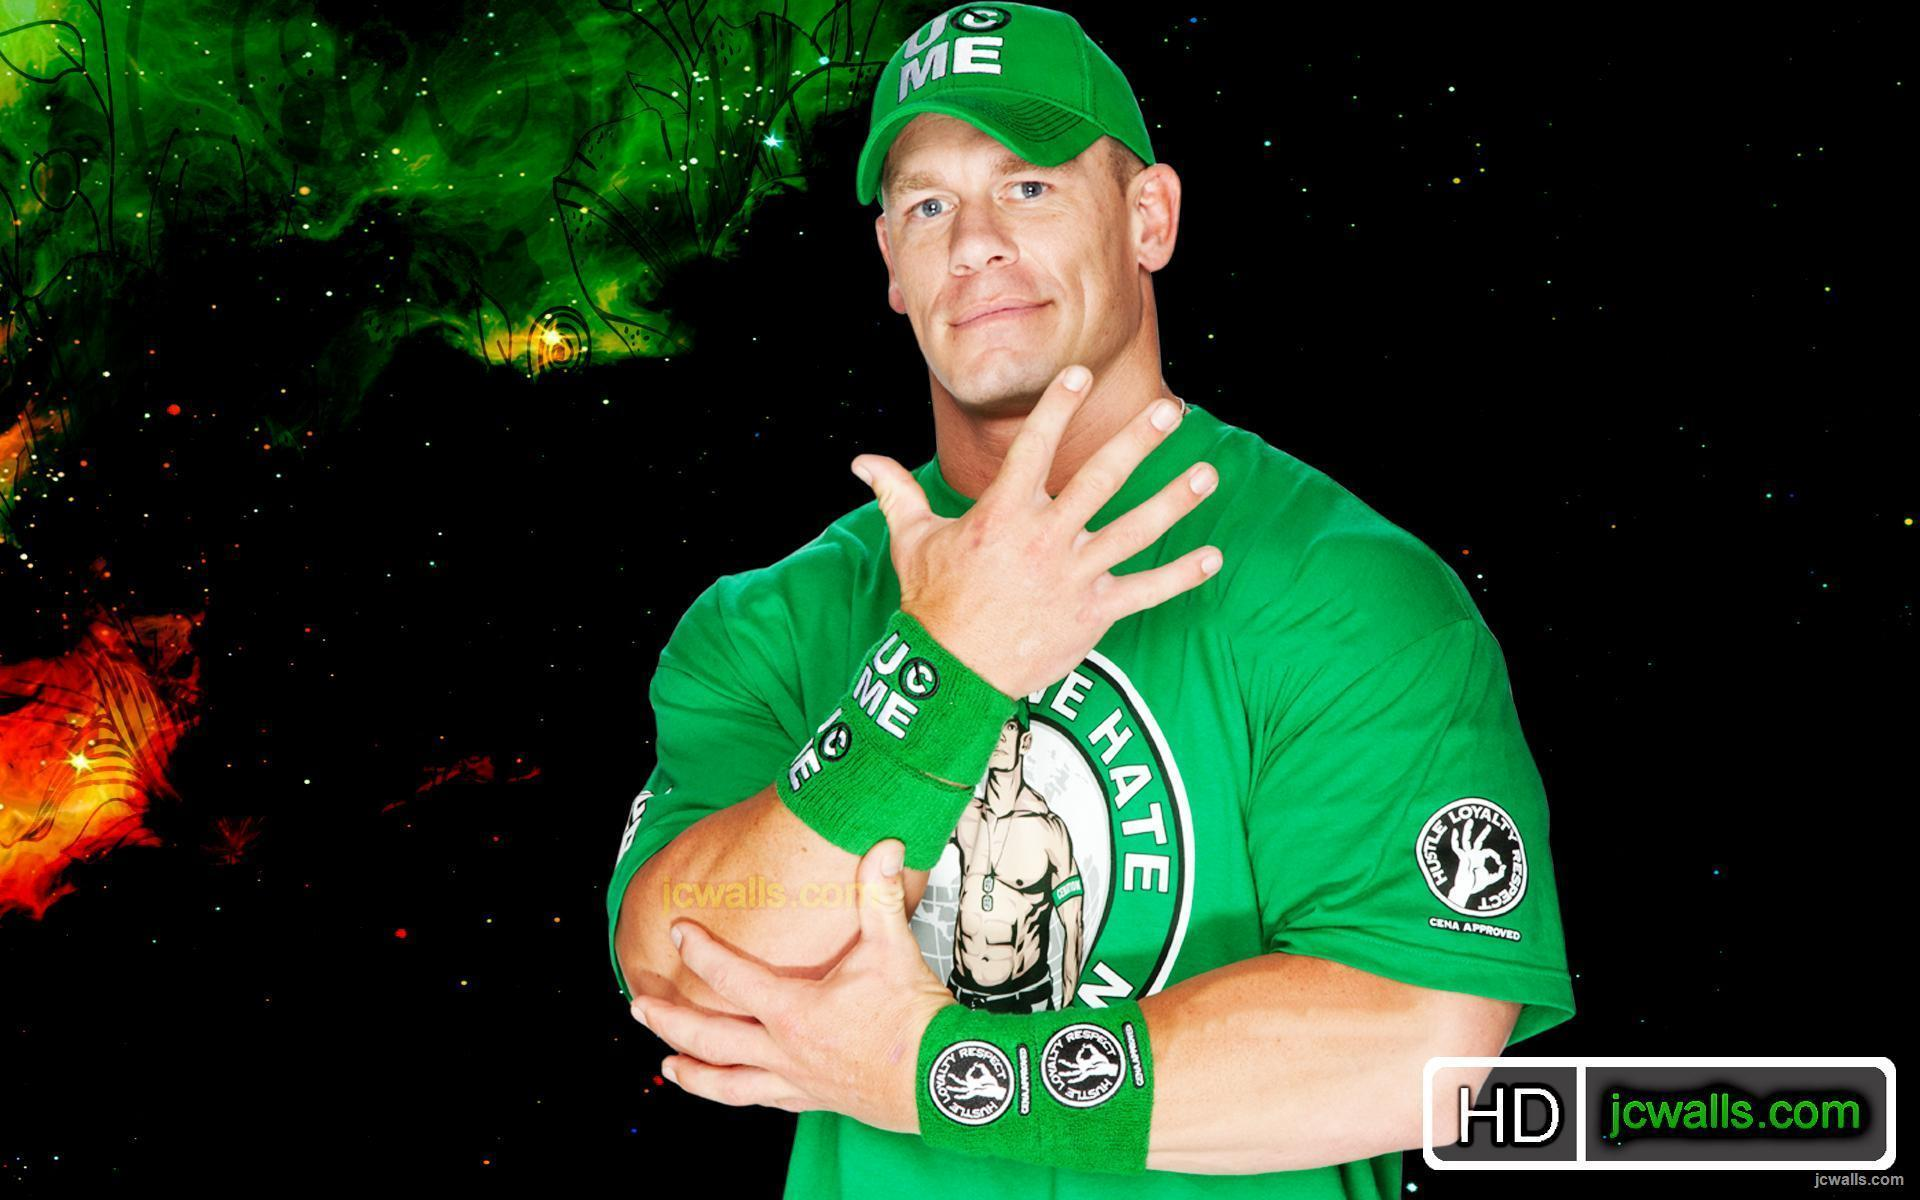 John Cena Wallpaper For Computer #39316 Hd Wallpapers Background ...